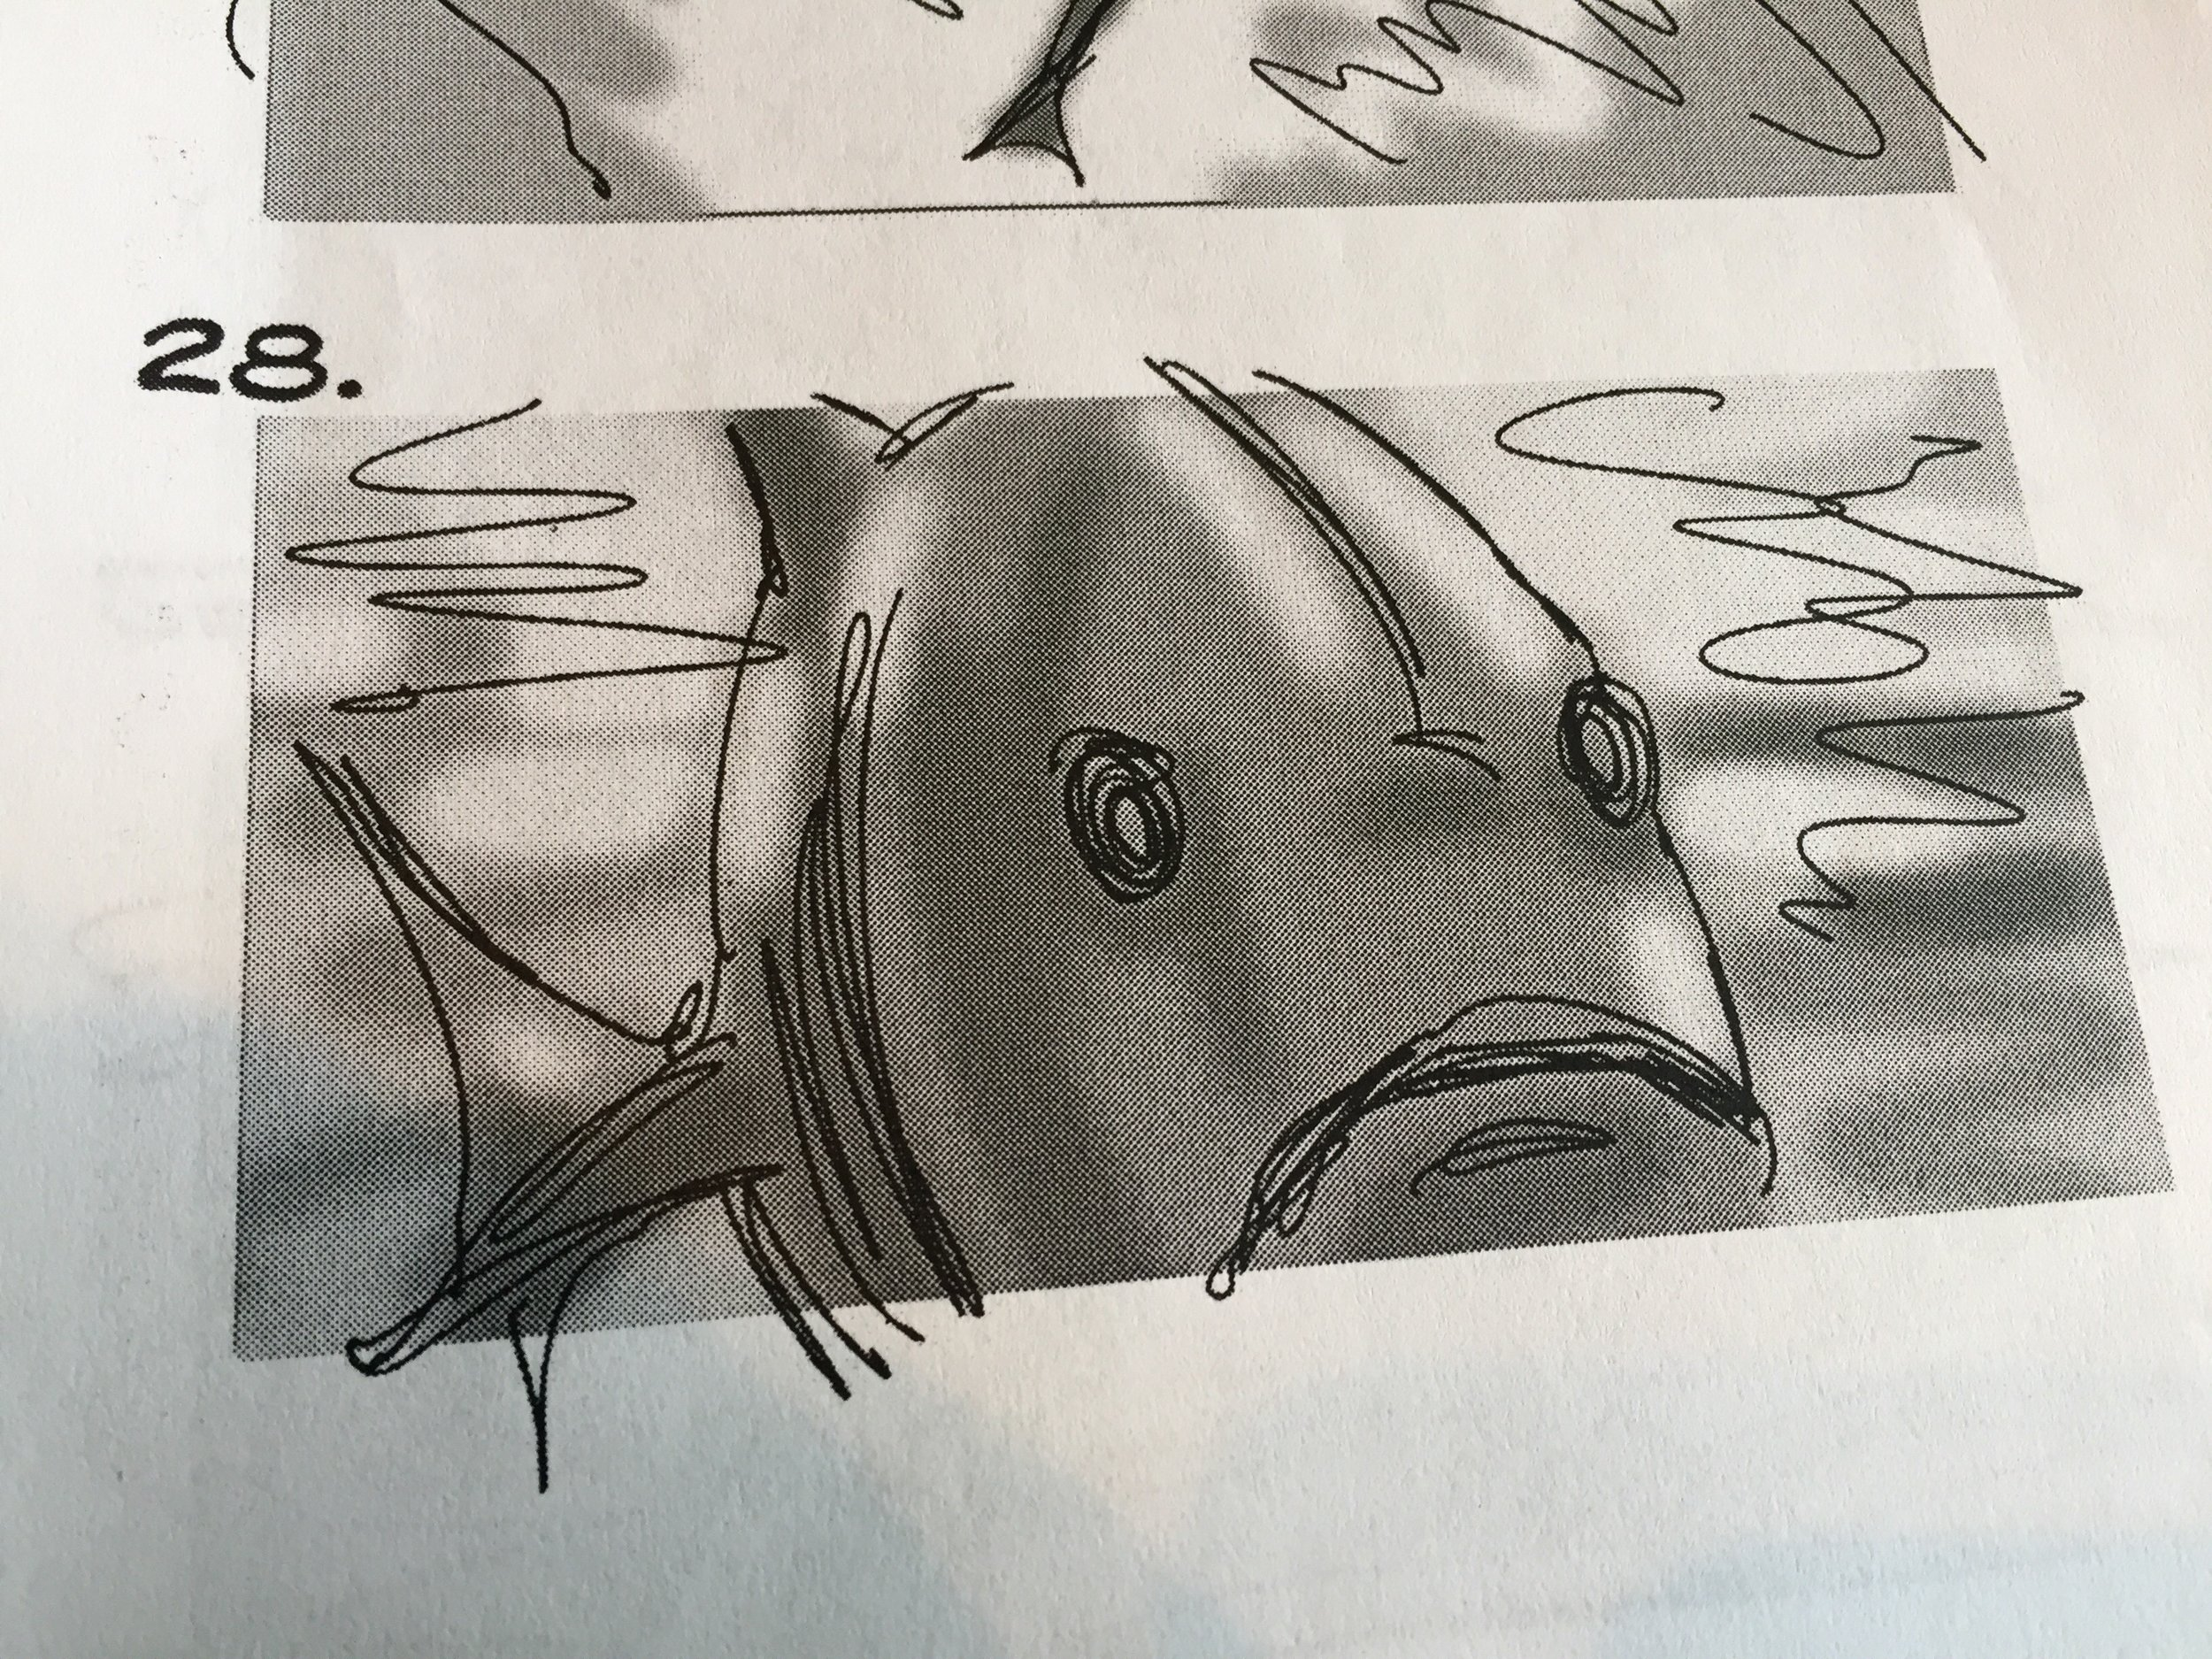 One of the sketches from our story-board for the sequence.